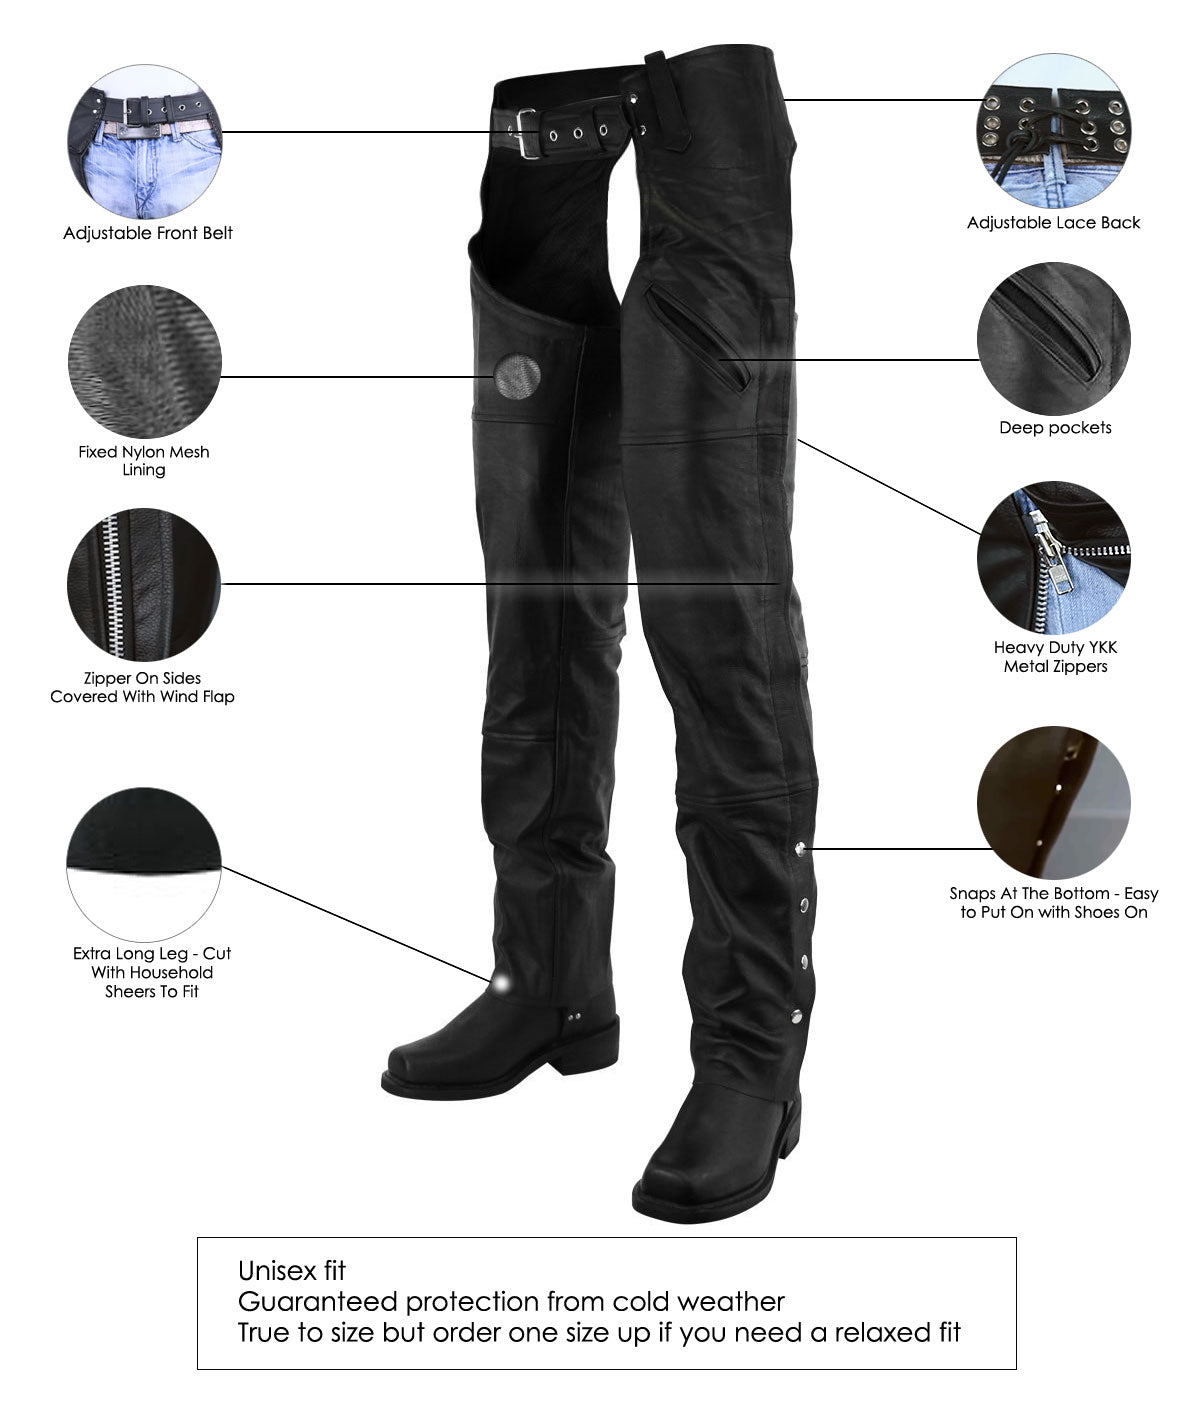 Premium Leather Deep Pocket Leather Chaps with YKK Zippers